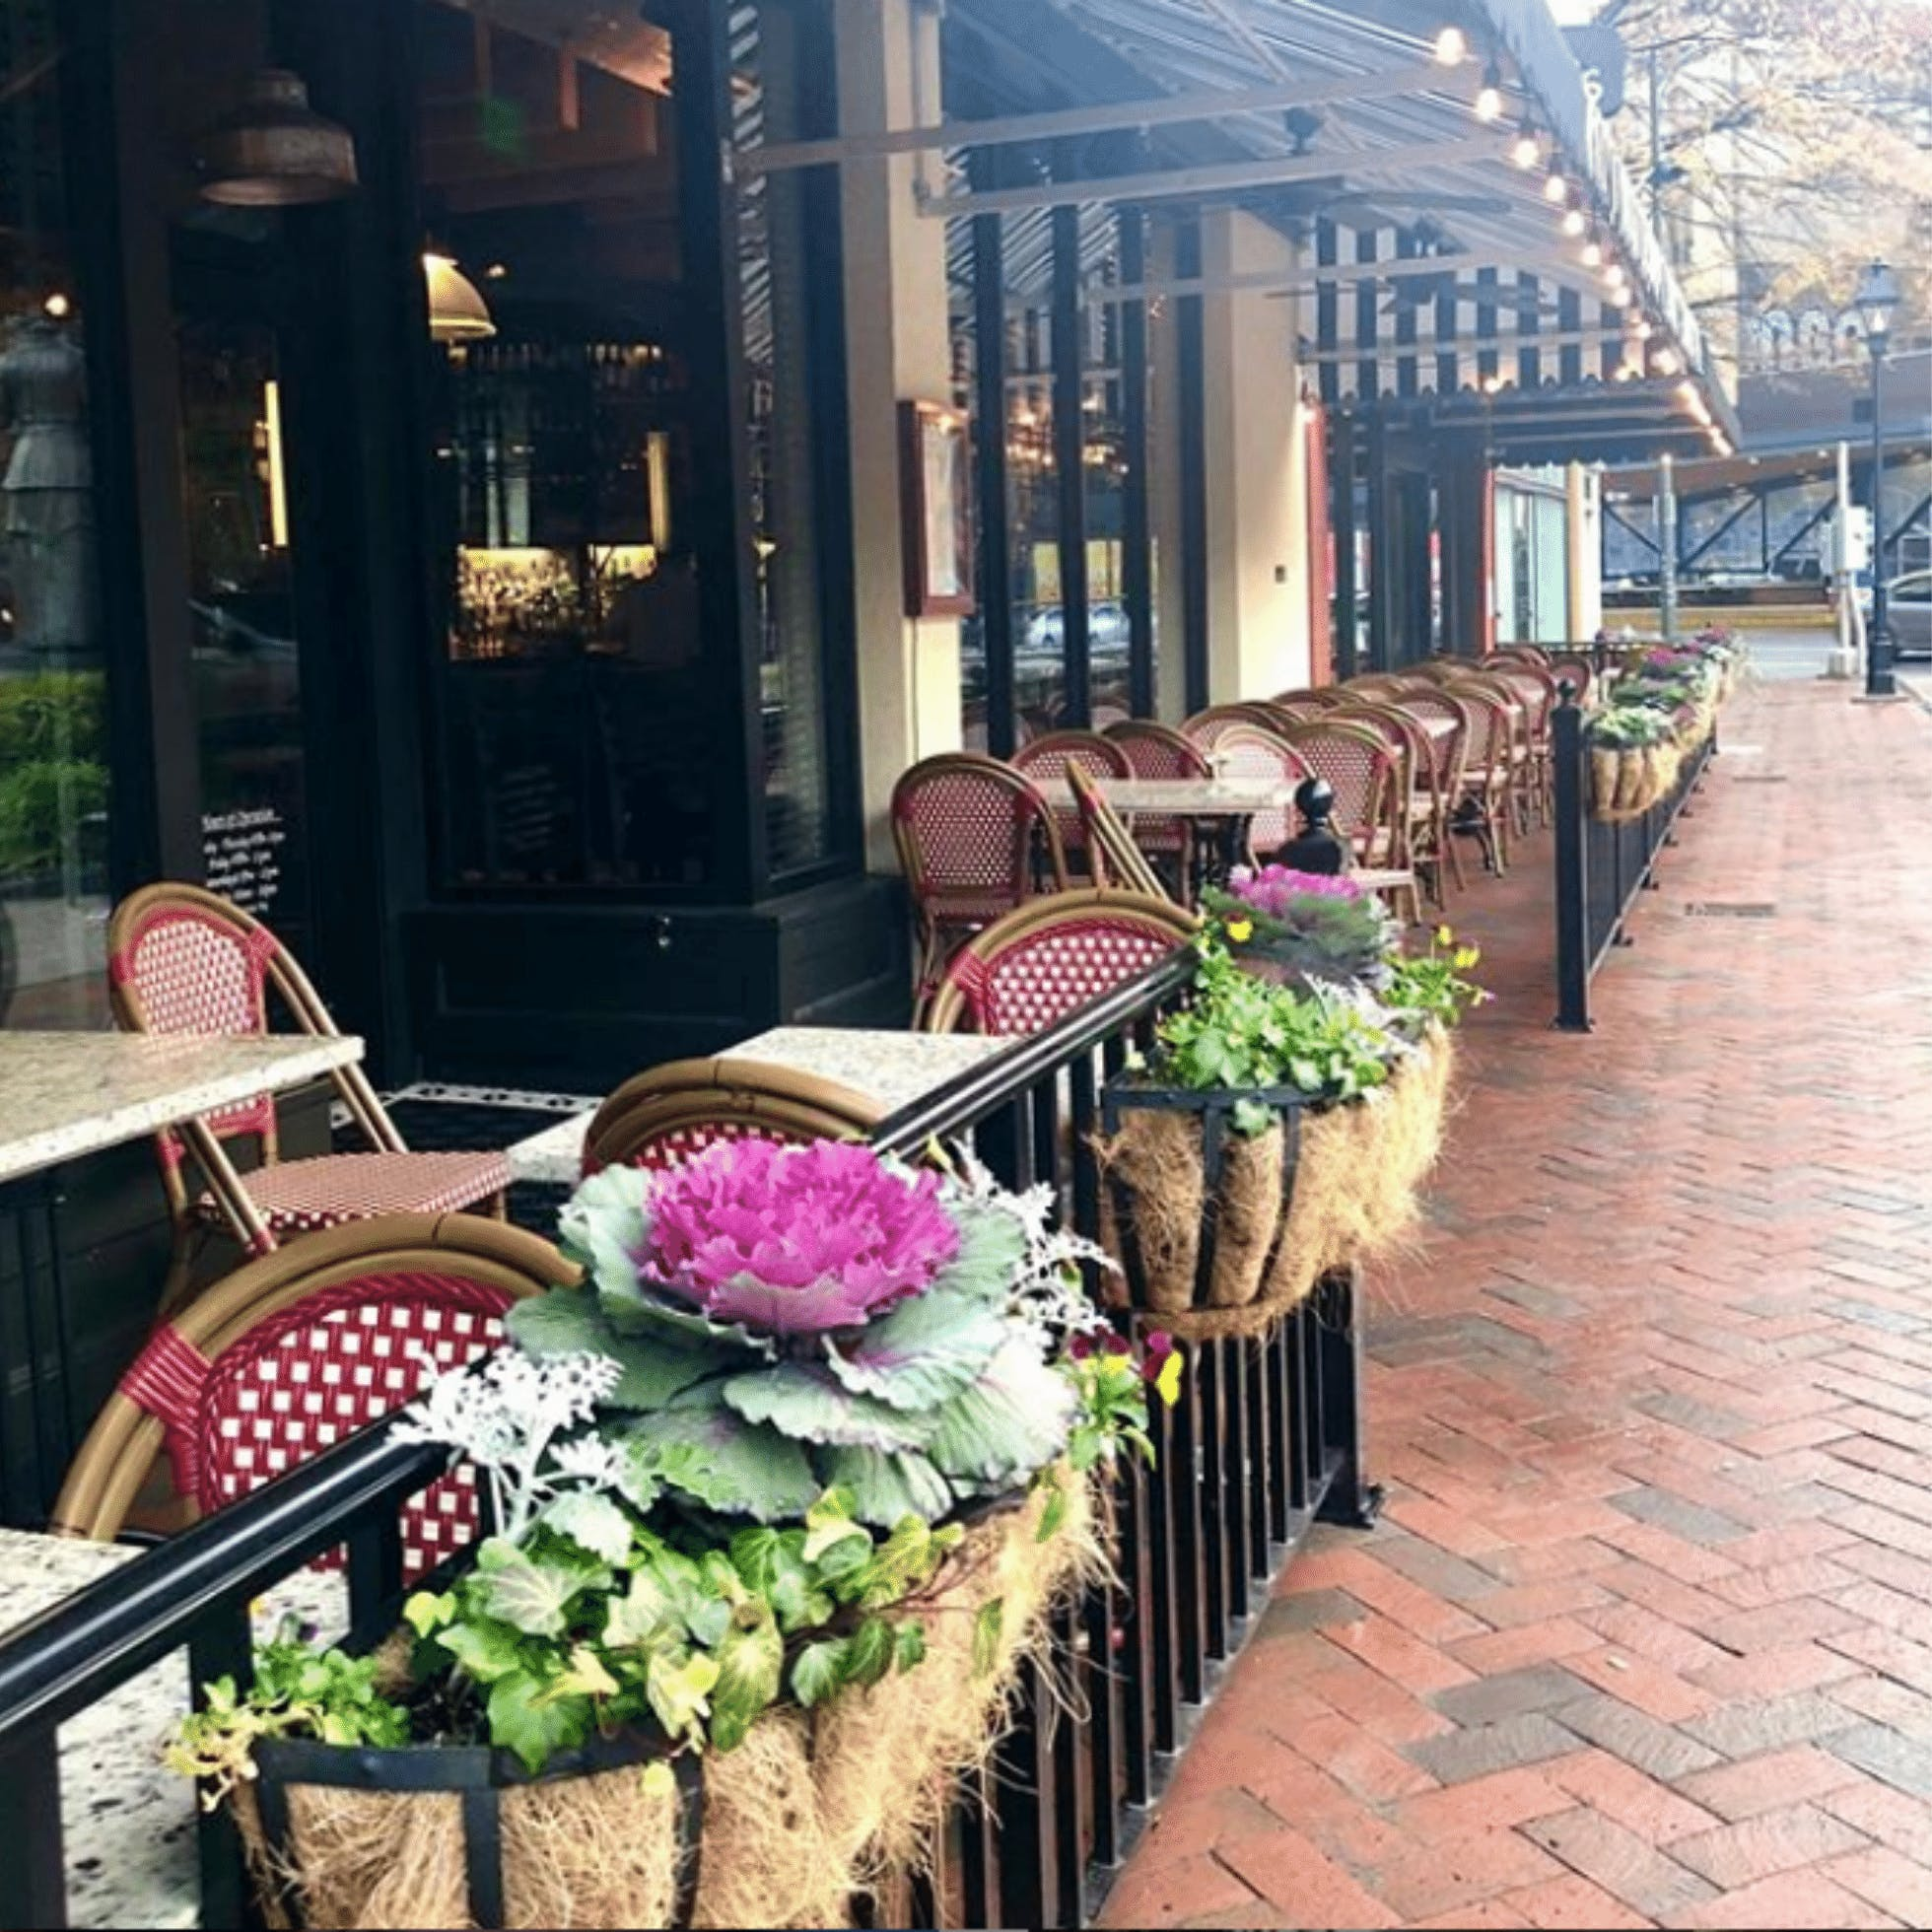 Max's on Broad Patio  - 15 Restaurants for Outdoor Dining in Downtown Richmond